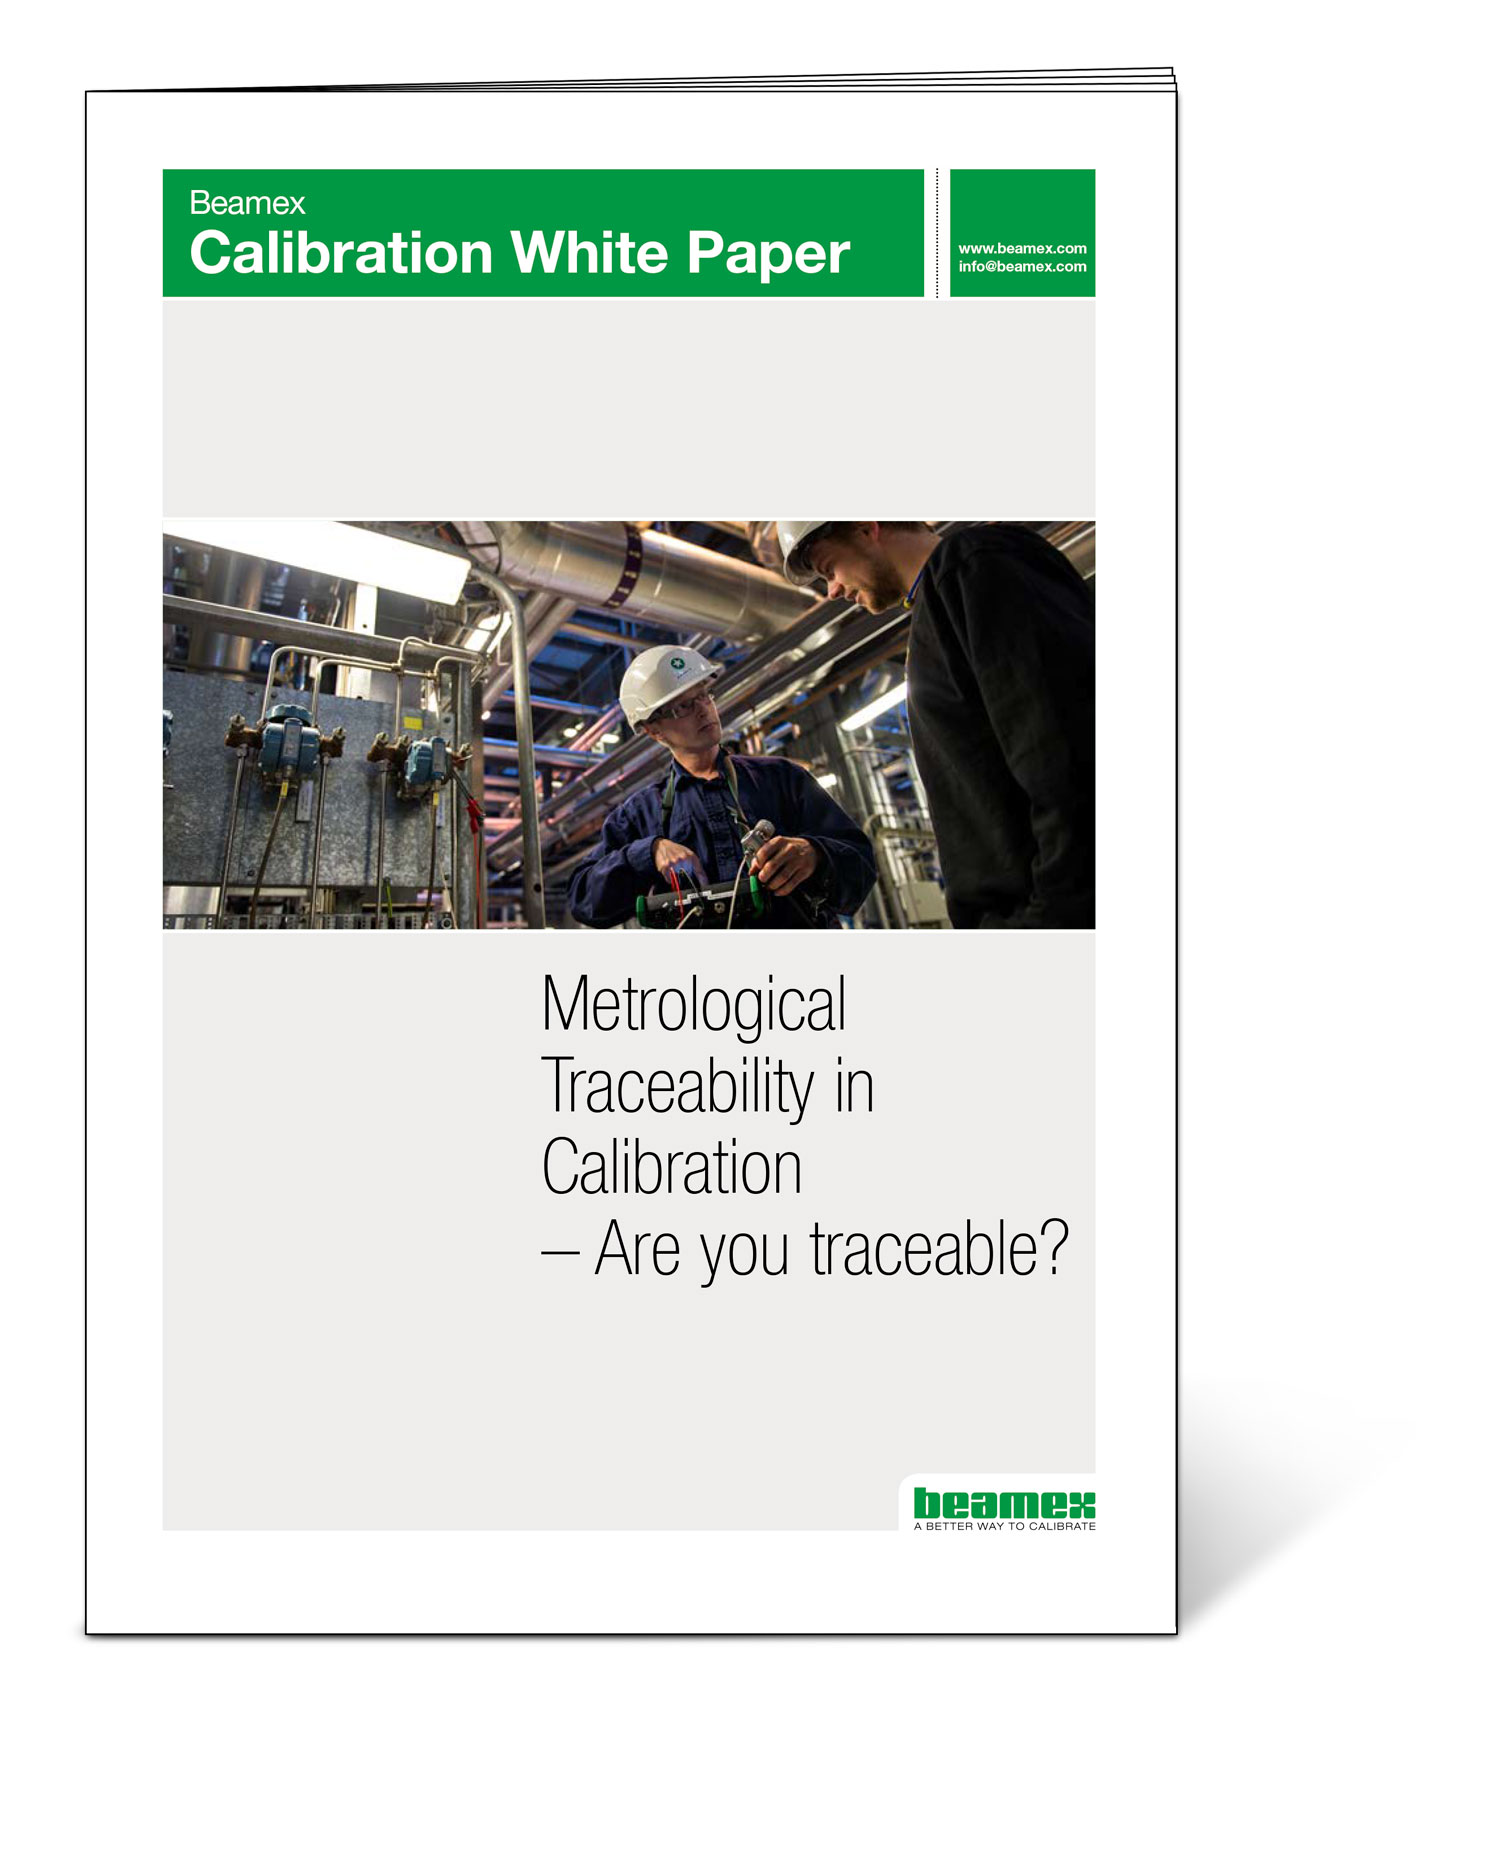 Are you traceable - Beamex white paper